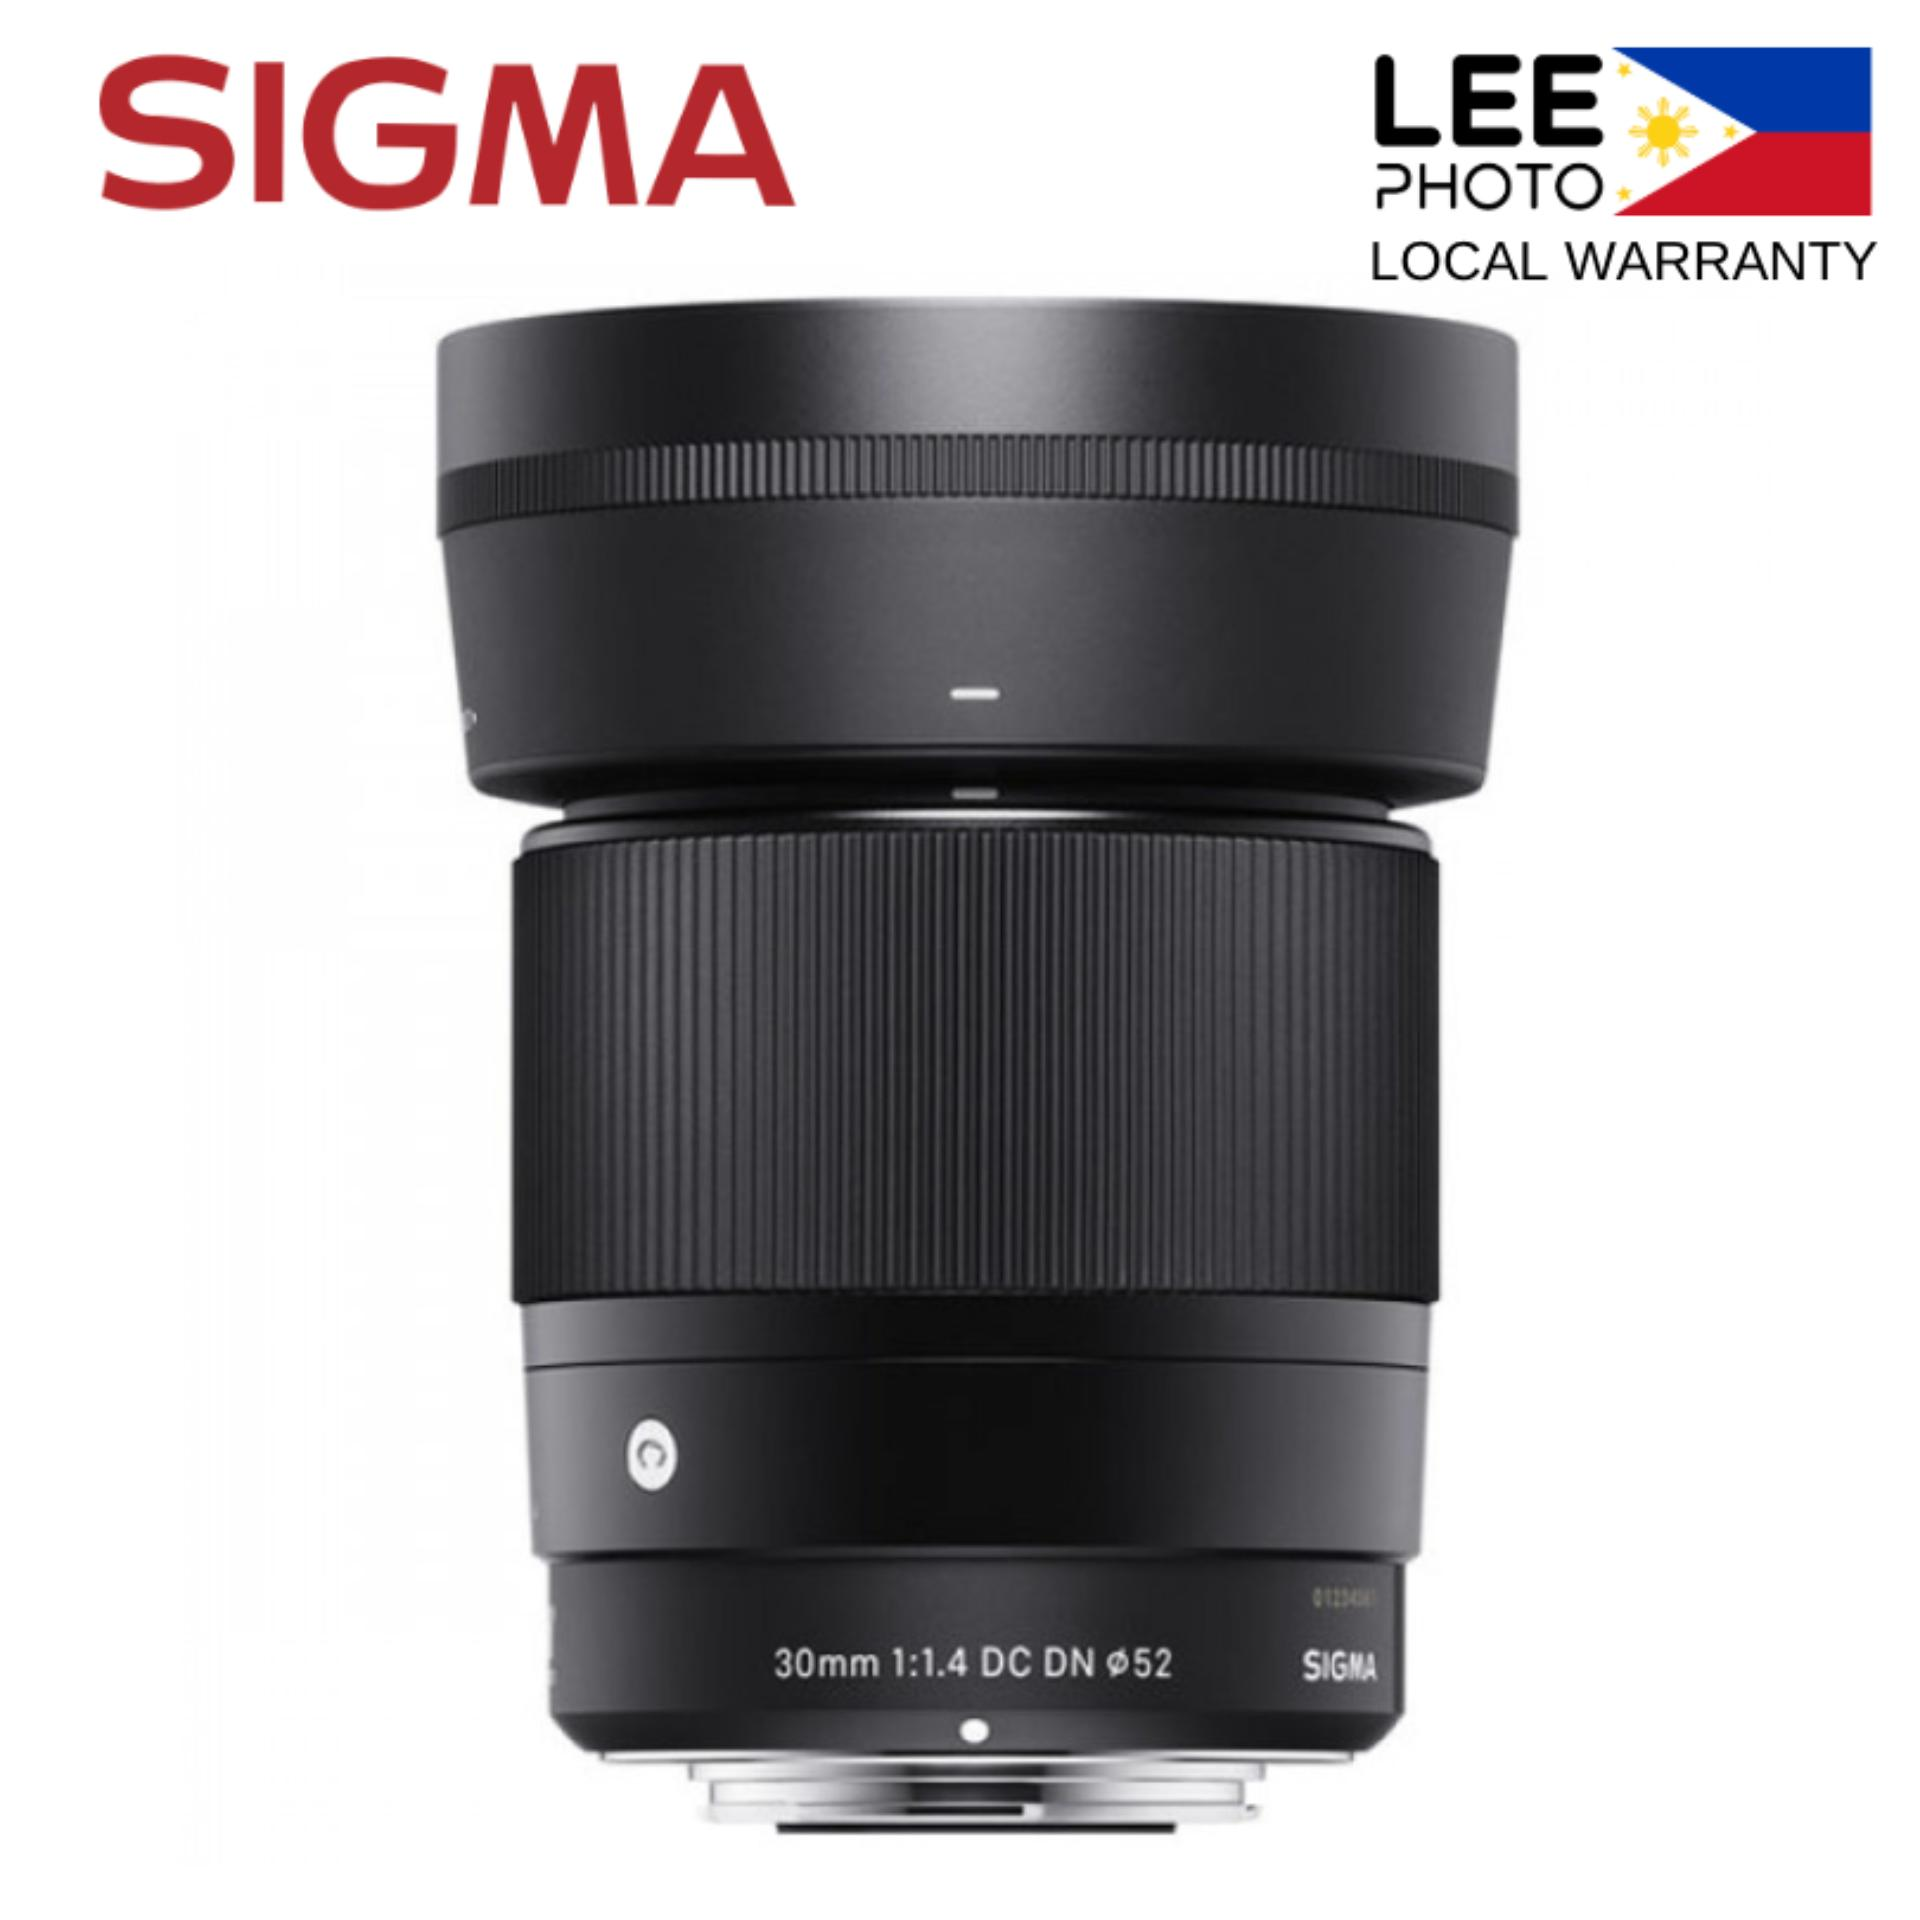 Sigma 30mm 1 4 DC DN Sony E-Mount Lens (Lee Photo)